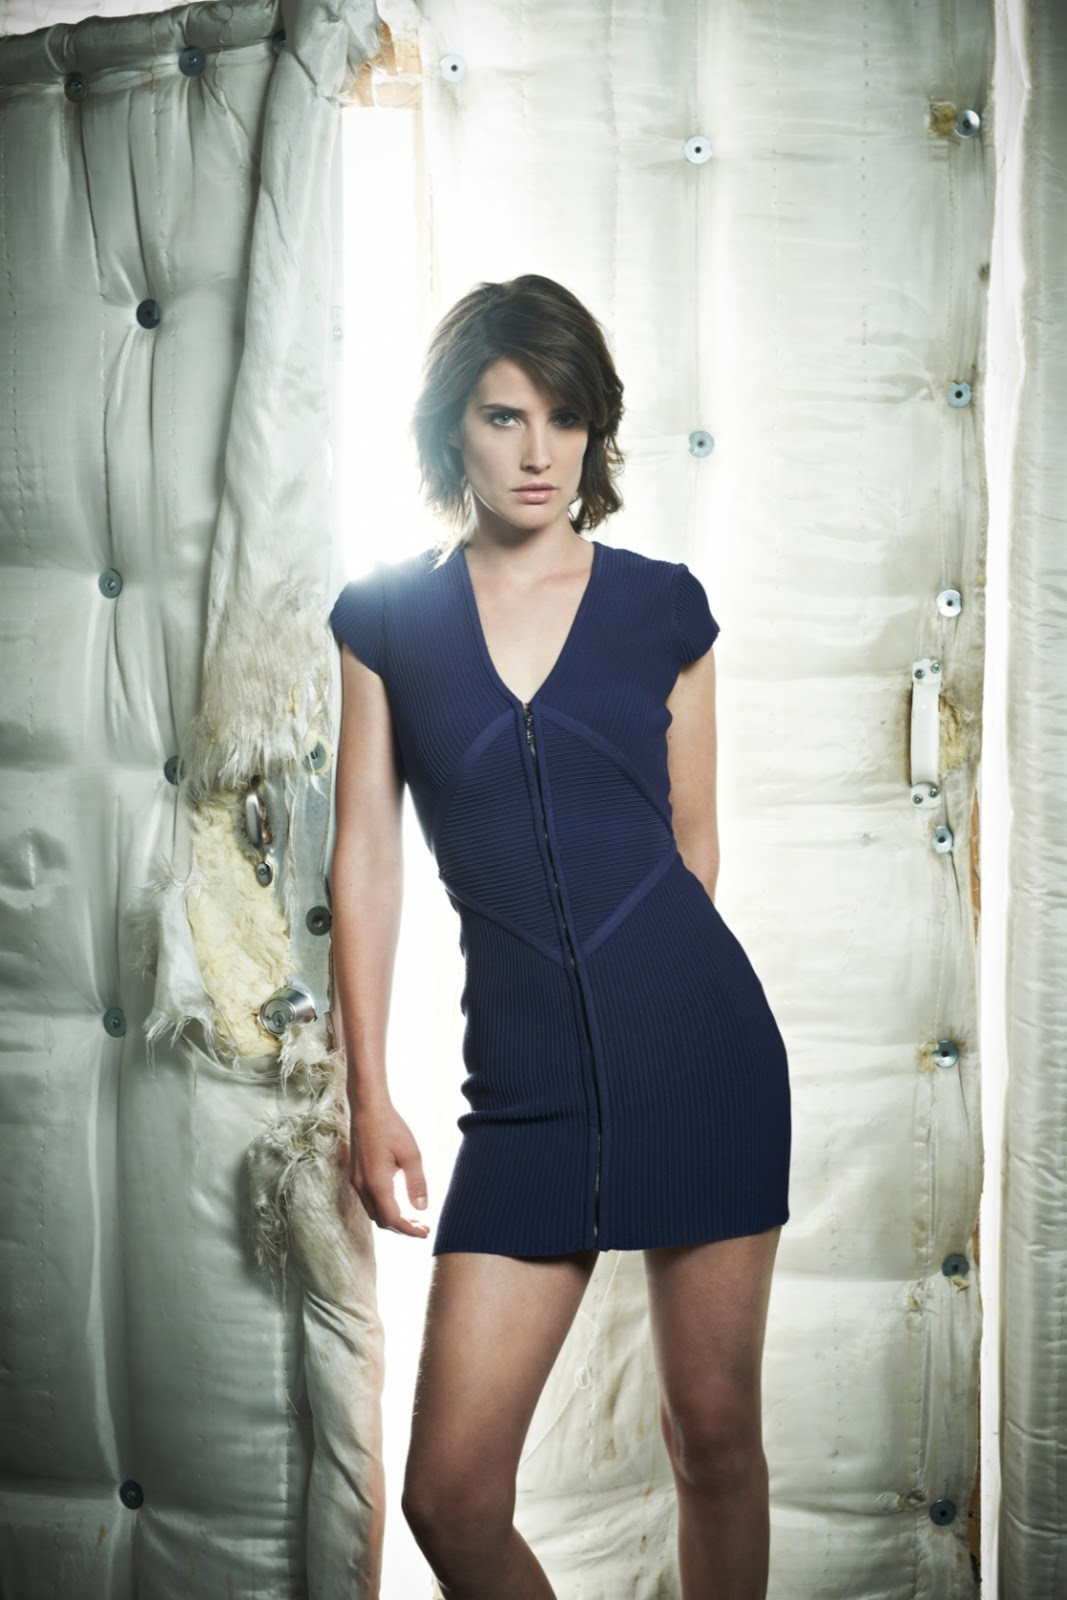 cobie smulder 2016 cobie smulder 2014 cobie smulders 2005 cobie smulders 2009